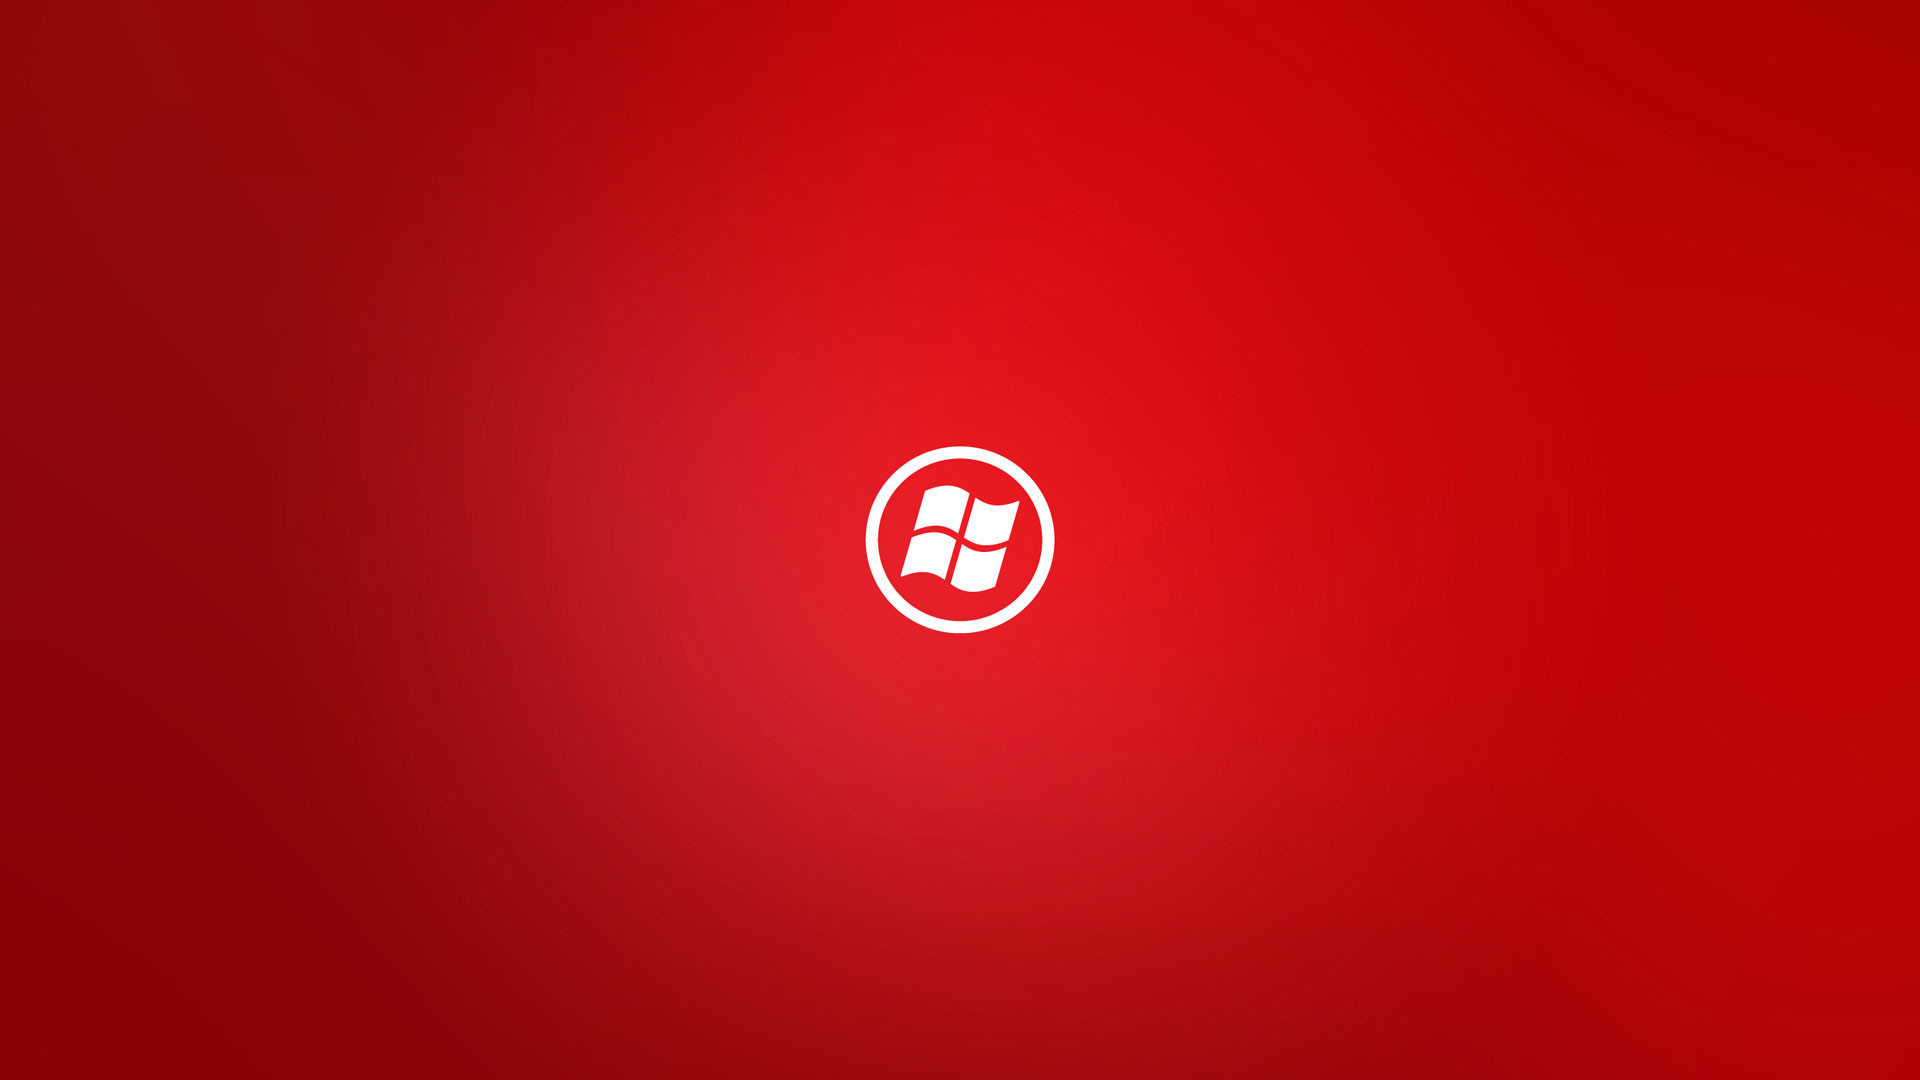 1920x1080  hd pics photos red windows logo wallpapers desktop background  wallpaper